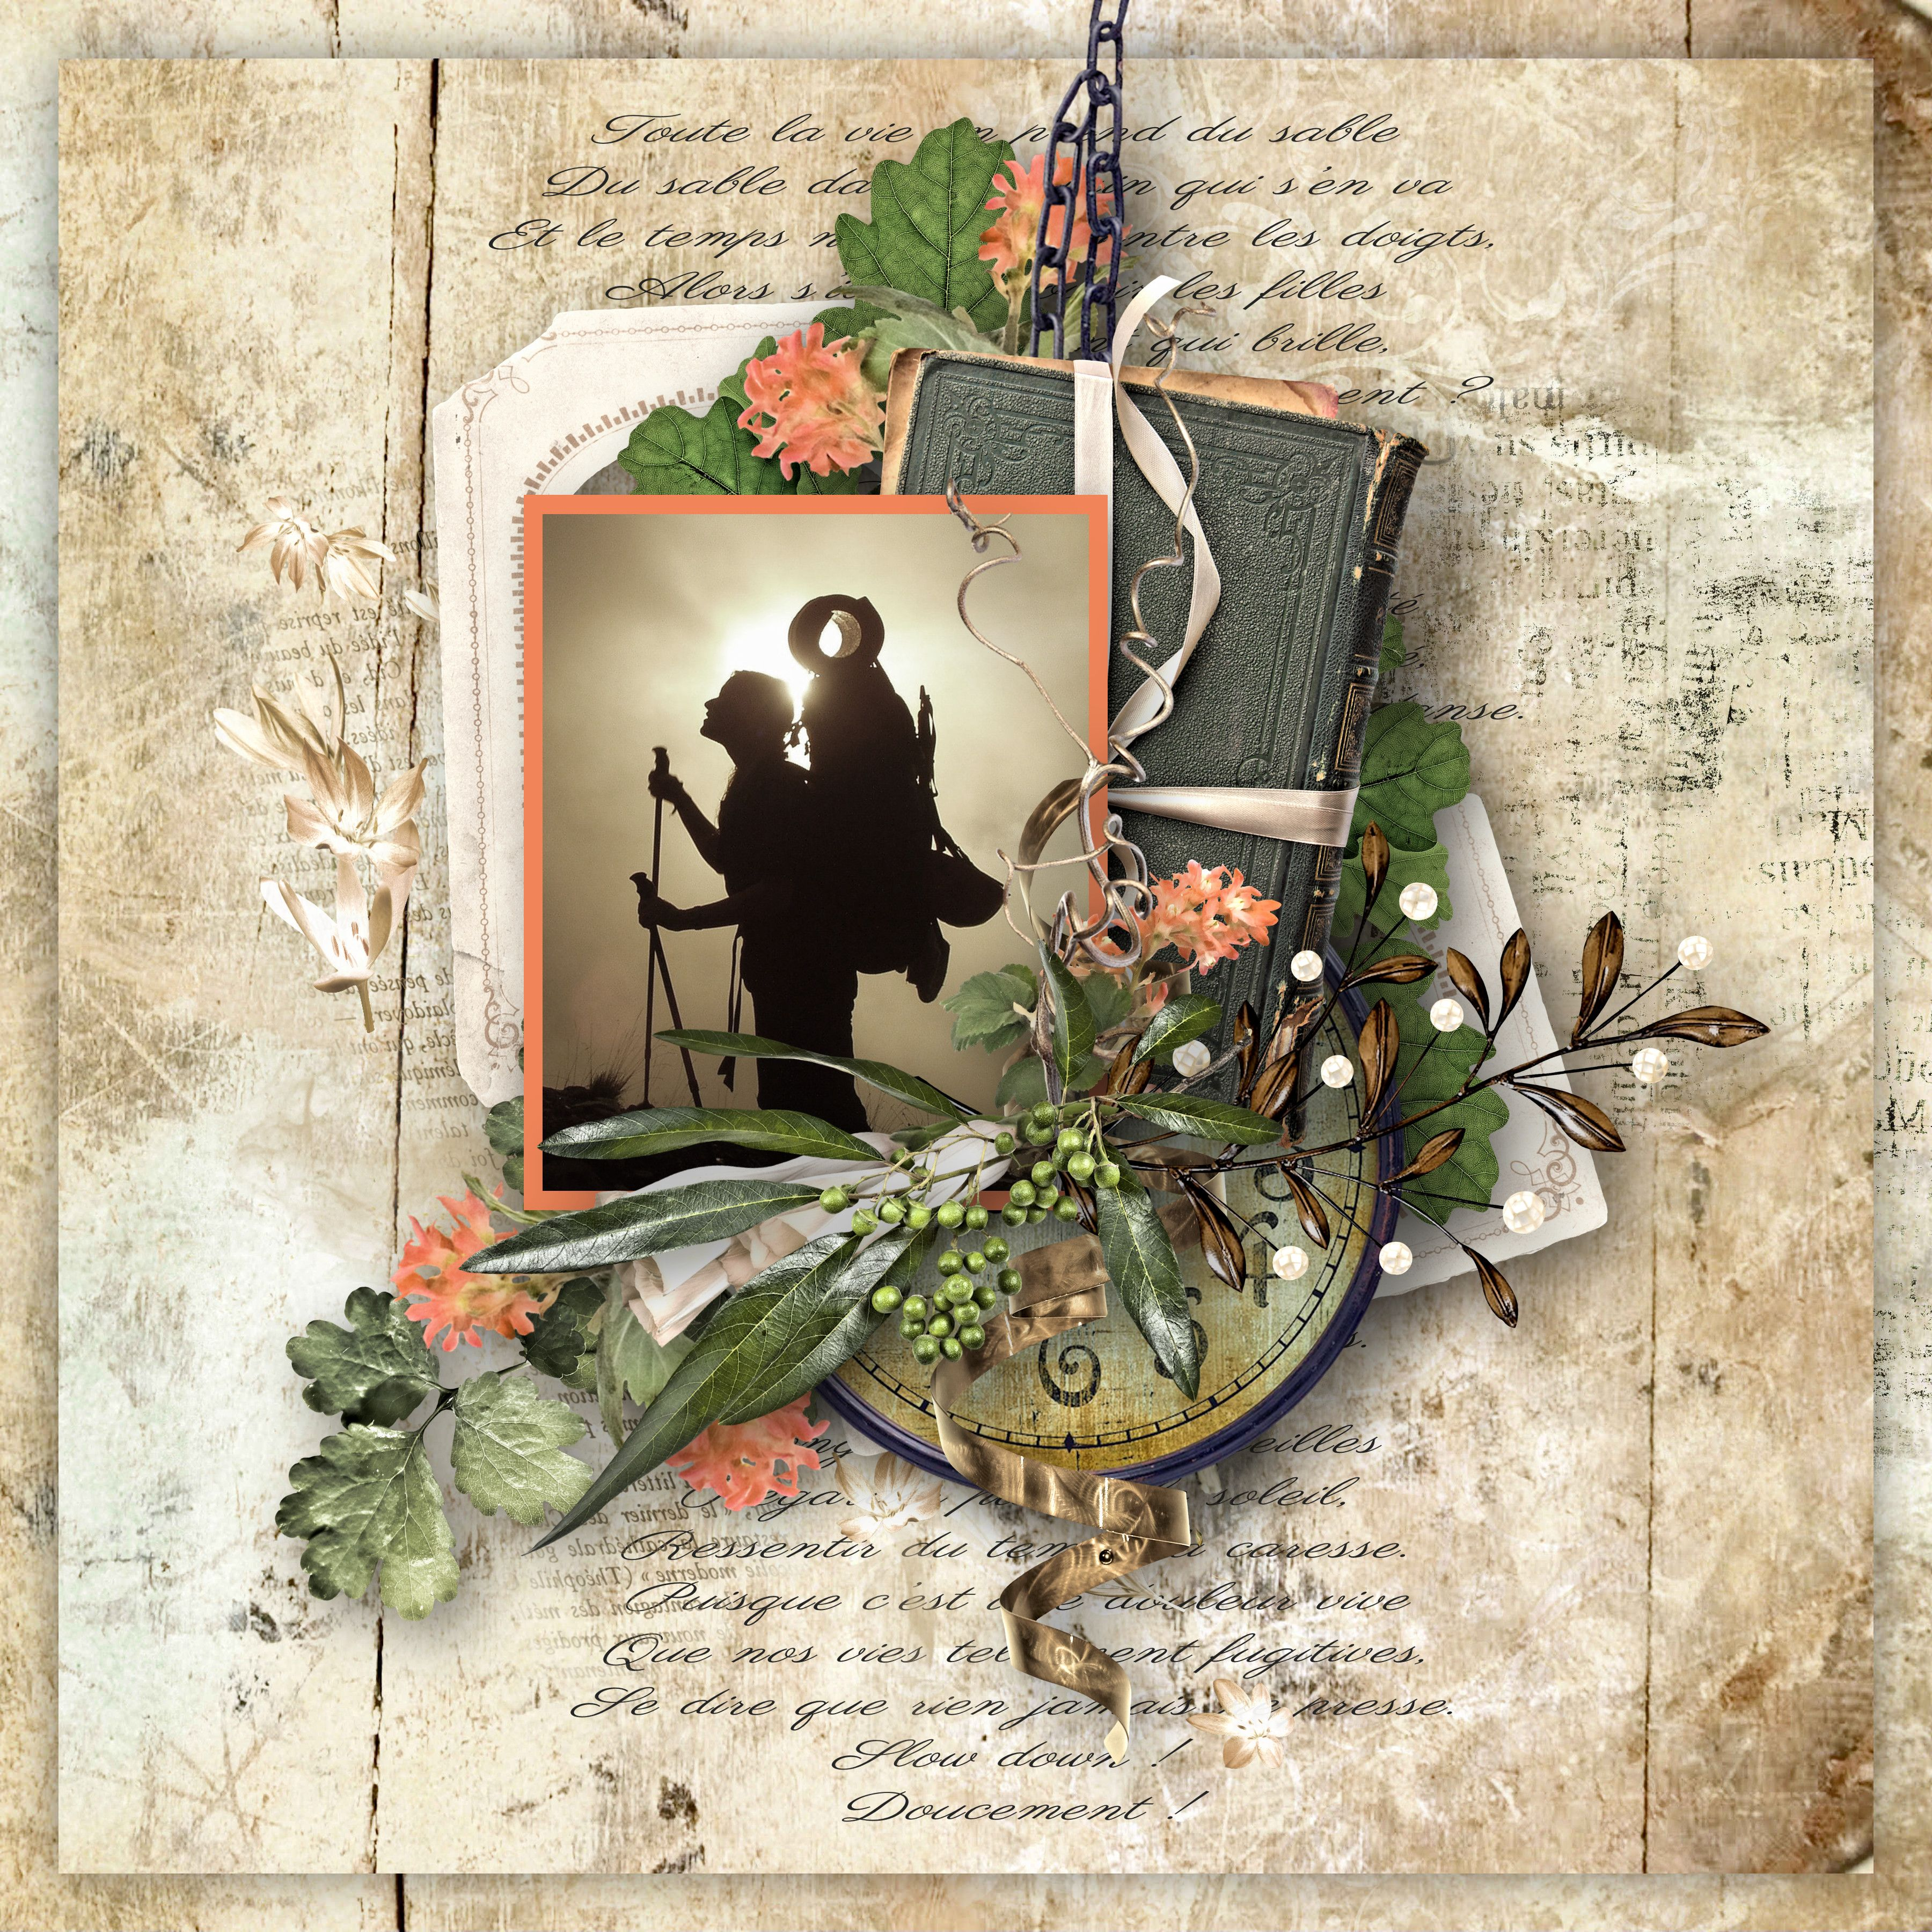 """""""Time Travel"""" by Doudou's Designs, https://www.etsy.com/fr/listing/529361229/time-travel-digital-scrapbooking-kit?ref=shop_home_feat_1, photo Pixabay"""